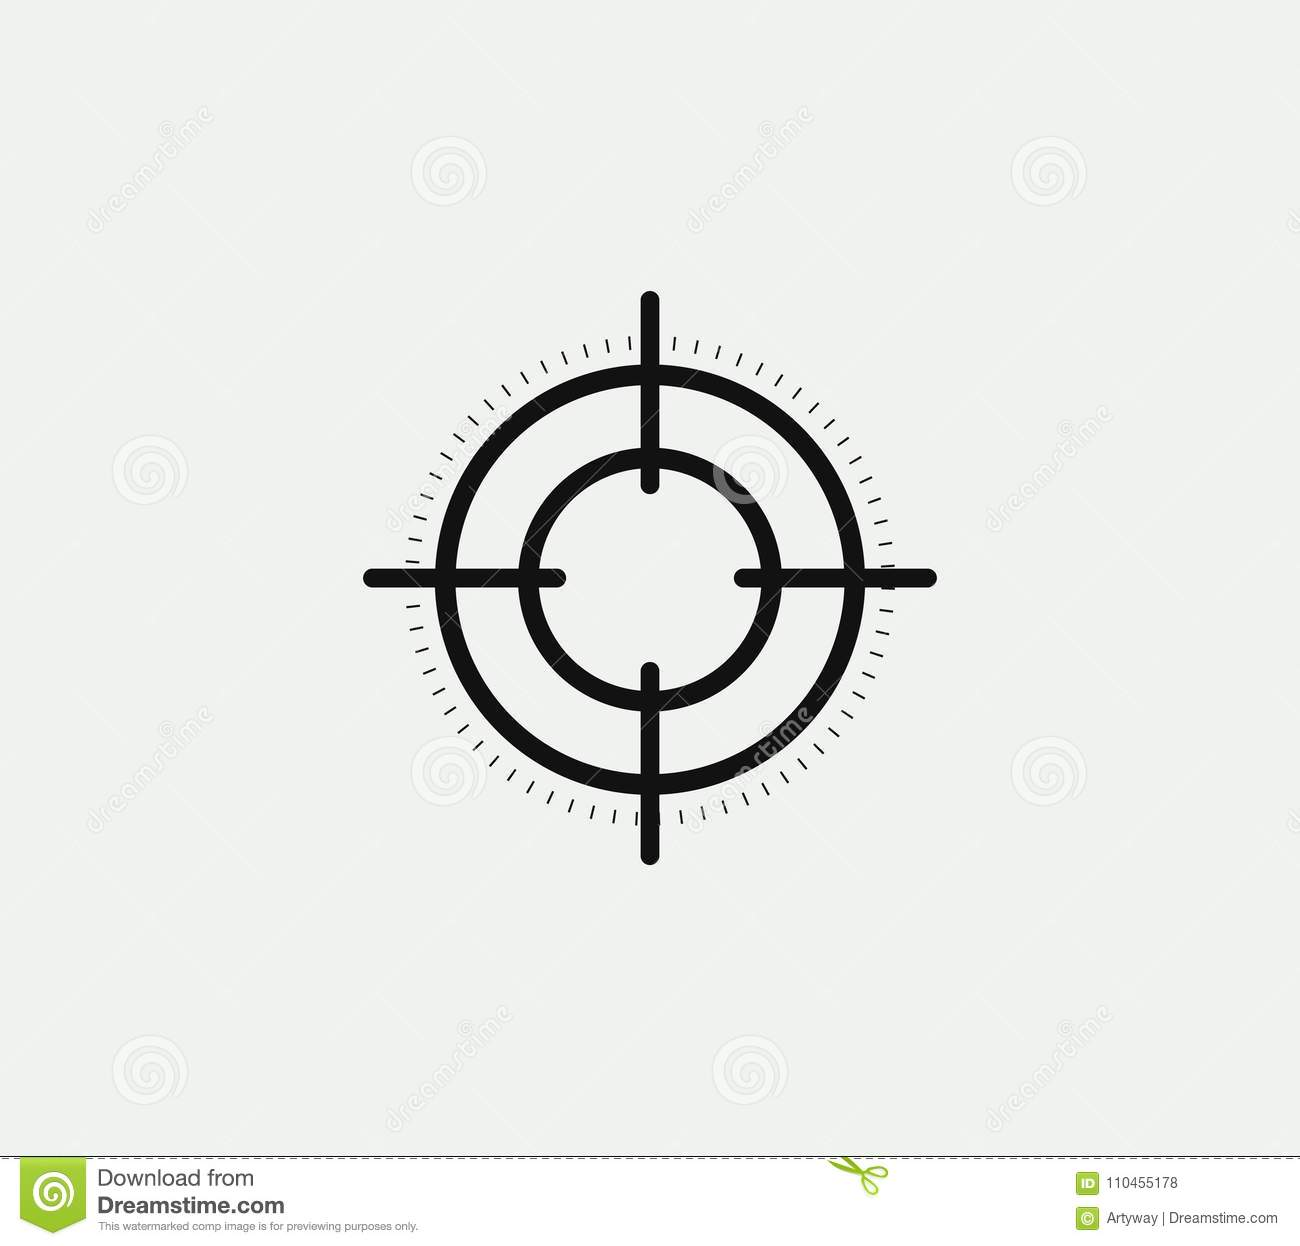 Aim Vector Linear Stylized Icon, Goal Abstract Sign, Target